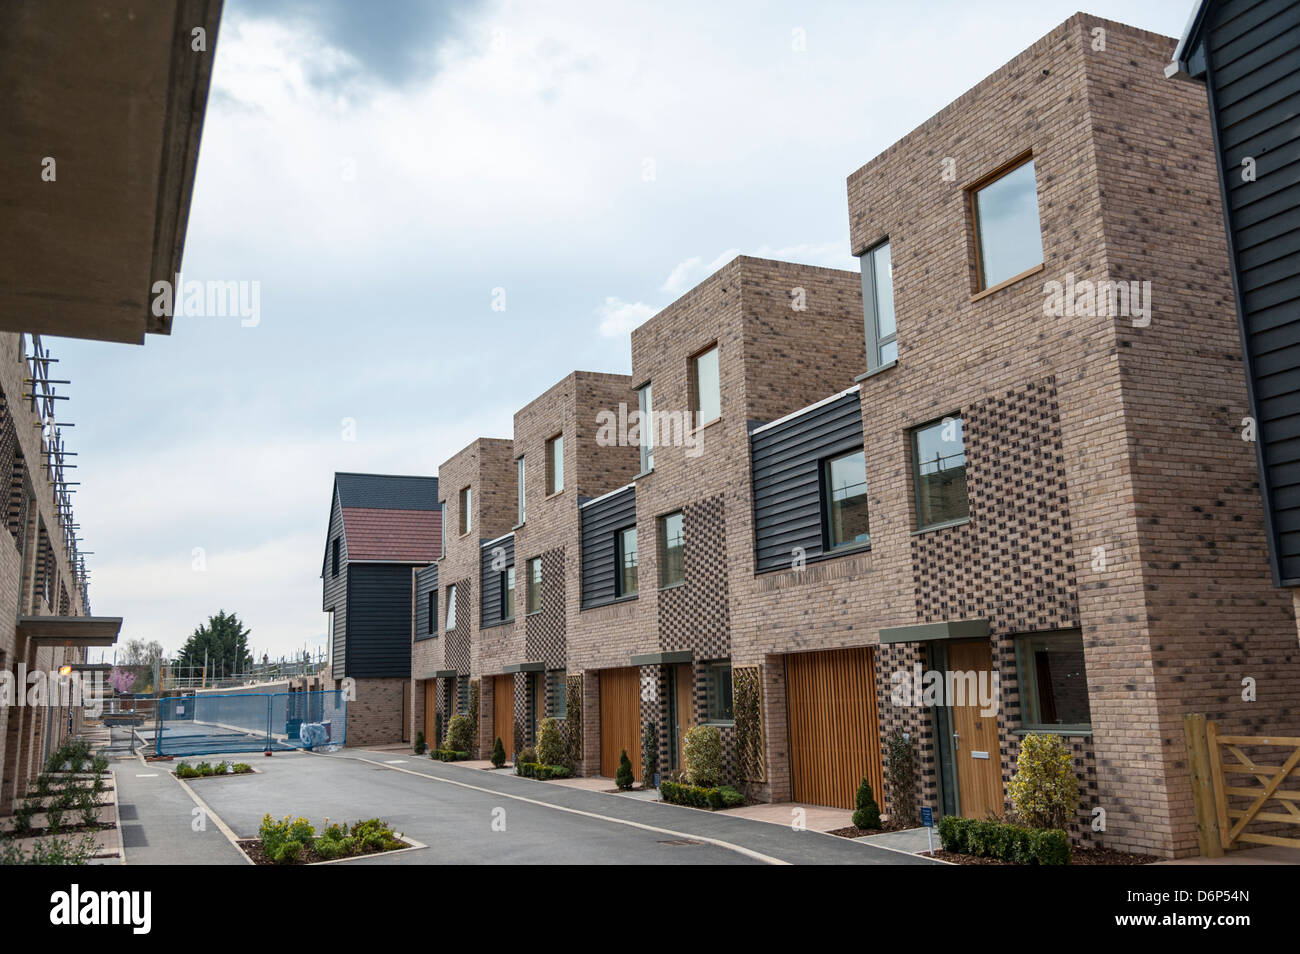 Housing Developments That Buy Your Property